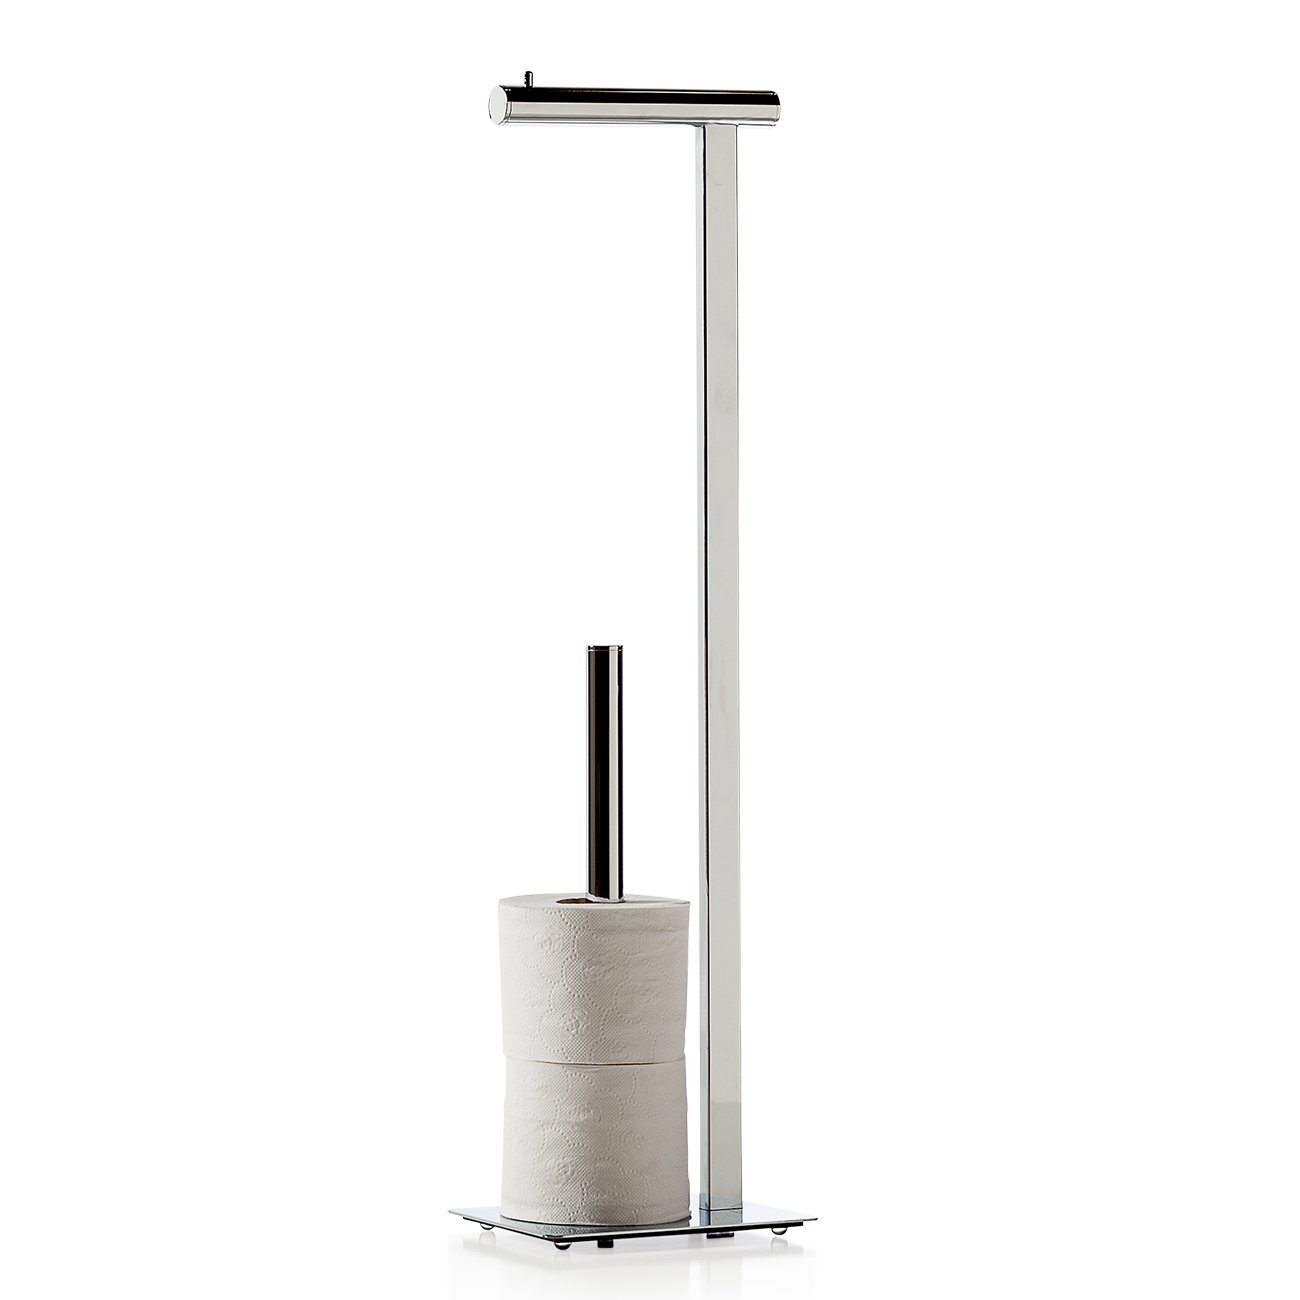 Torre & Tagus 950145 Pacific Spa Free Standing Toilet Paper Holder